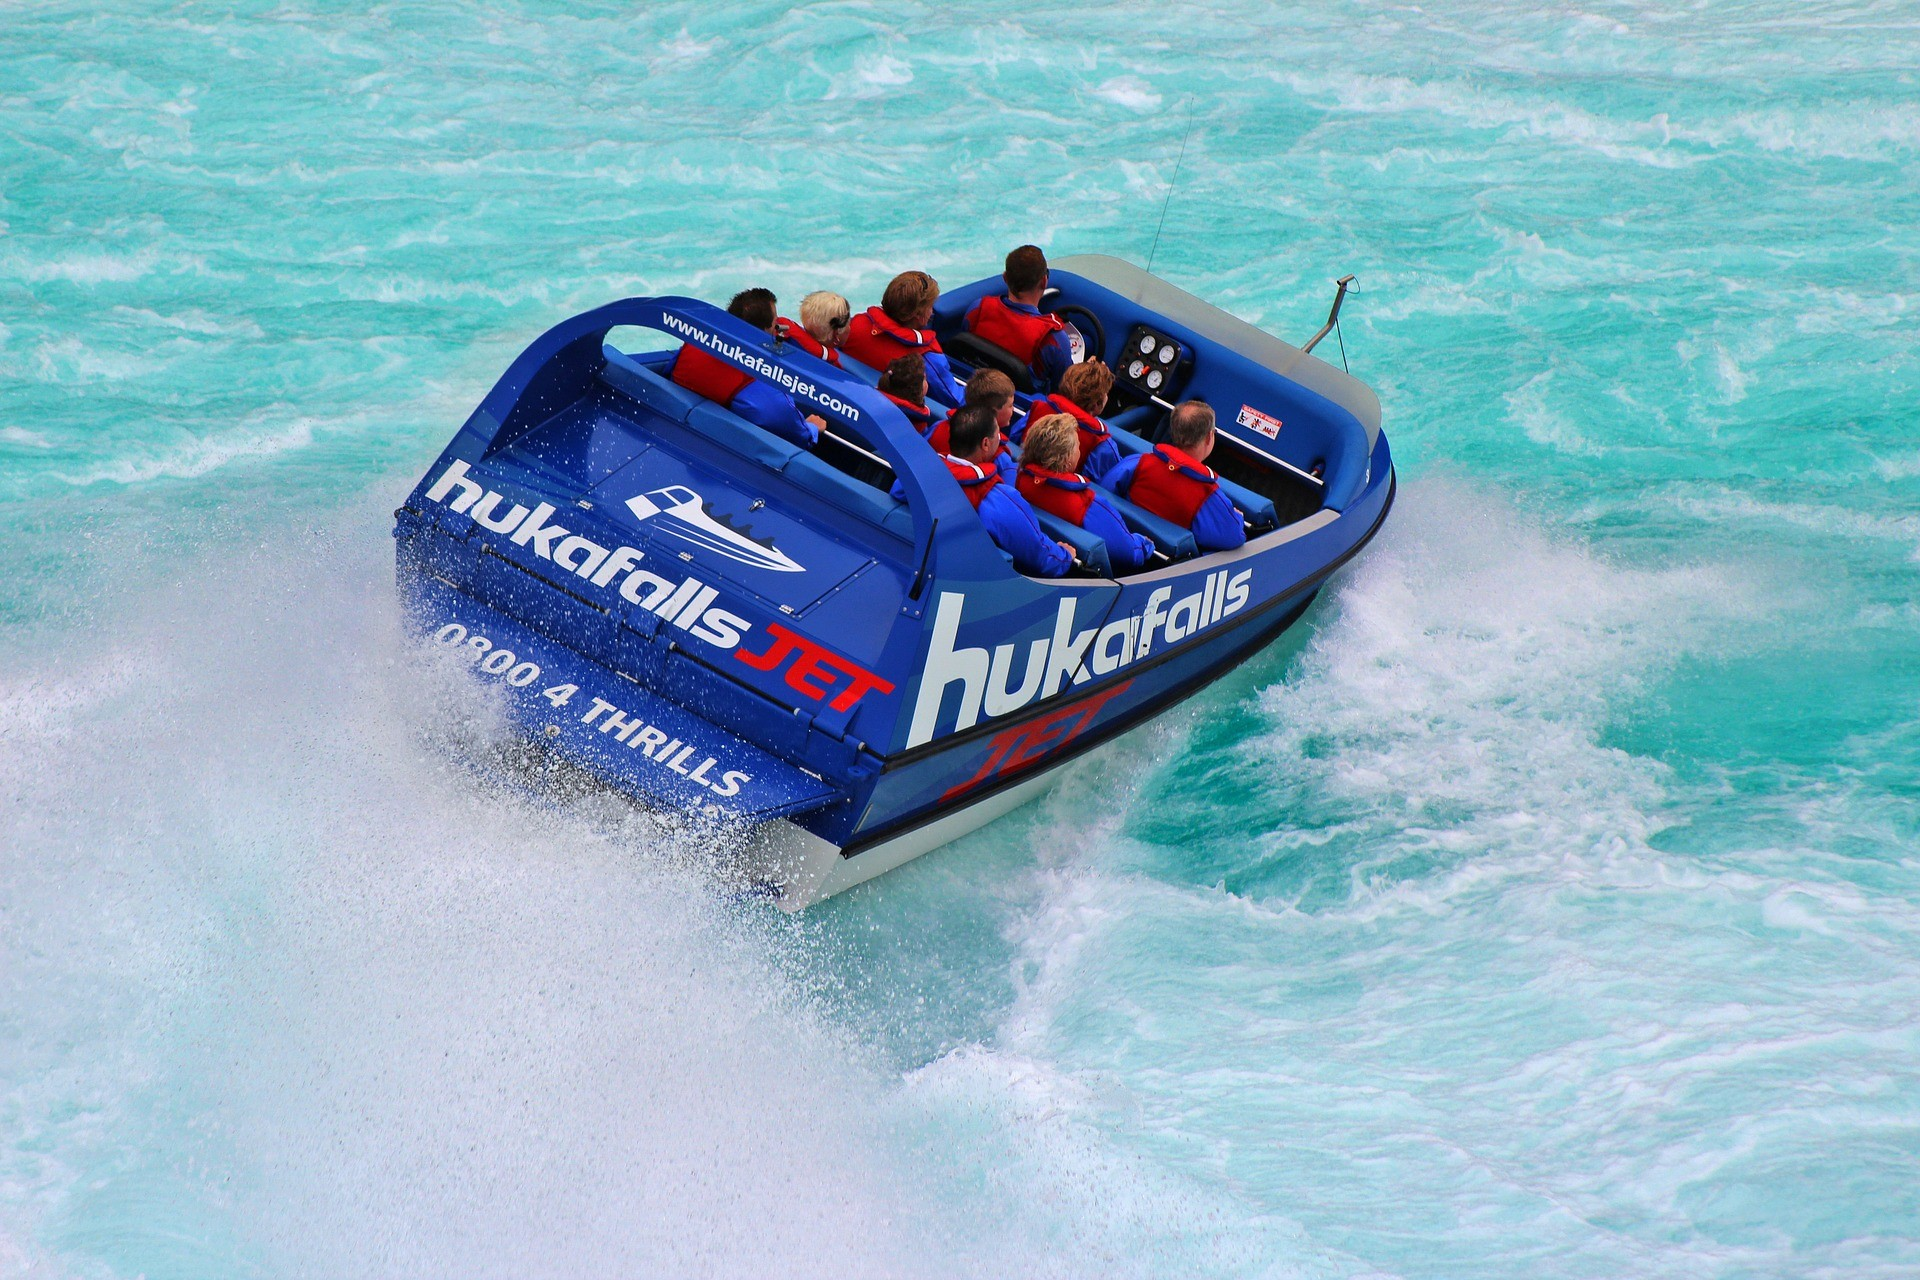 Jet Boat Huka Falls The Ultimate New Zealand Bucket List Faraway Lucy Travel Blog